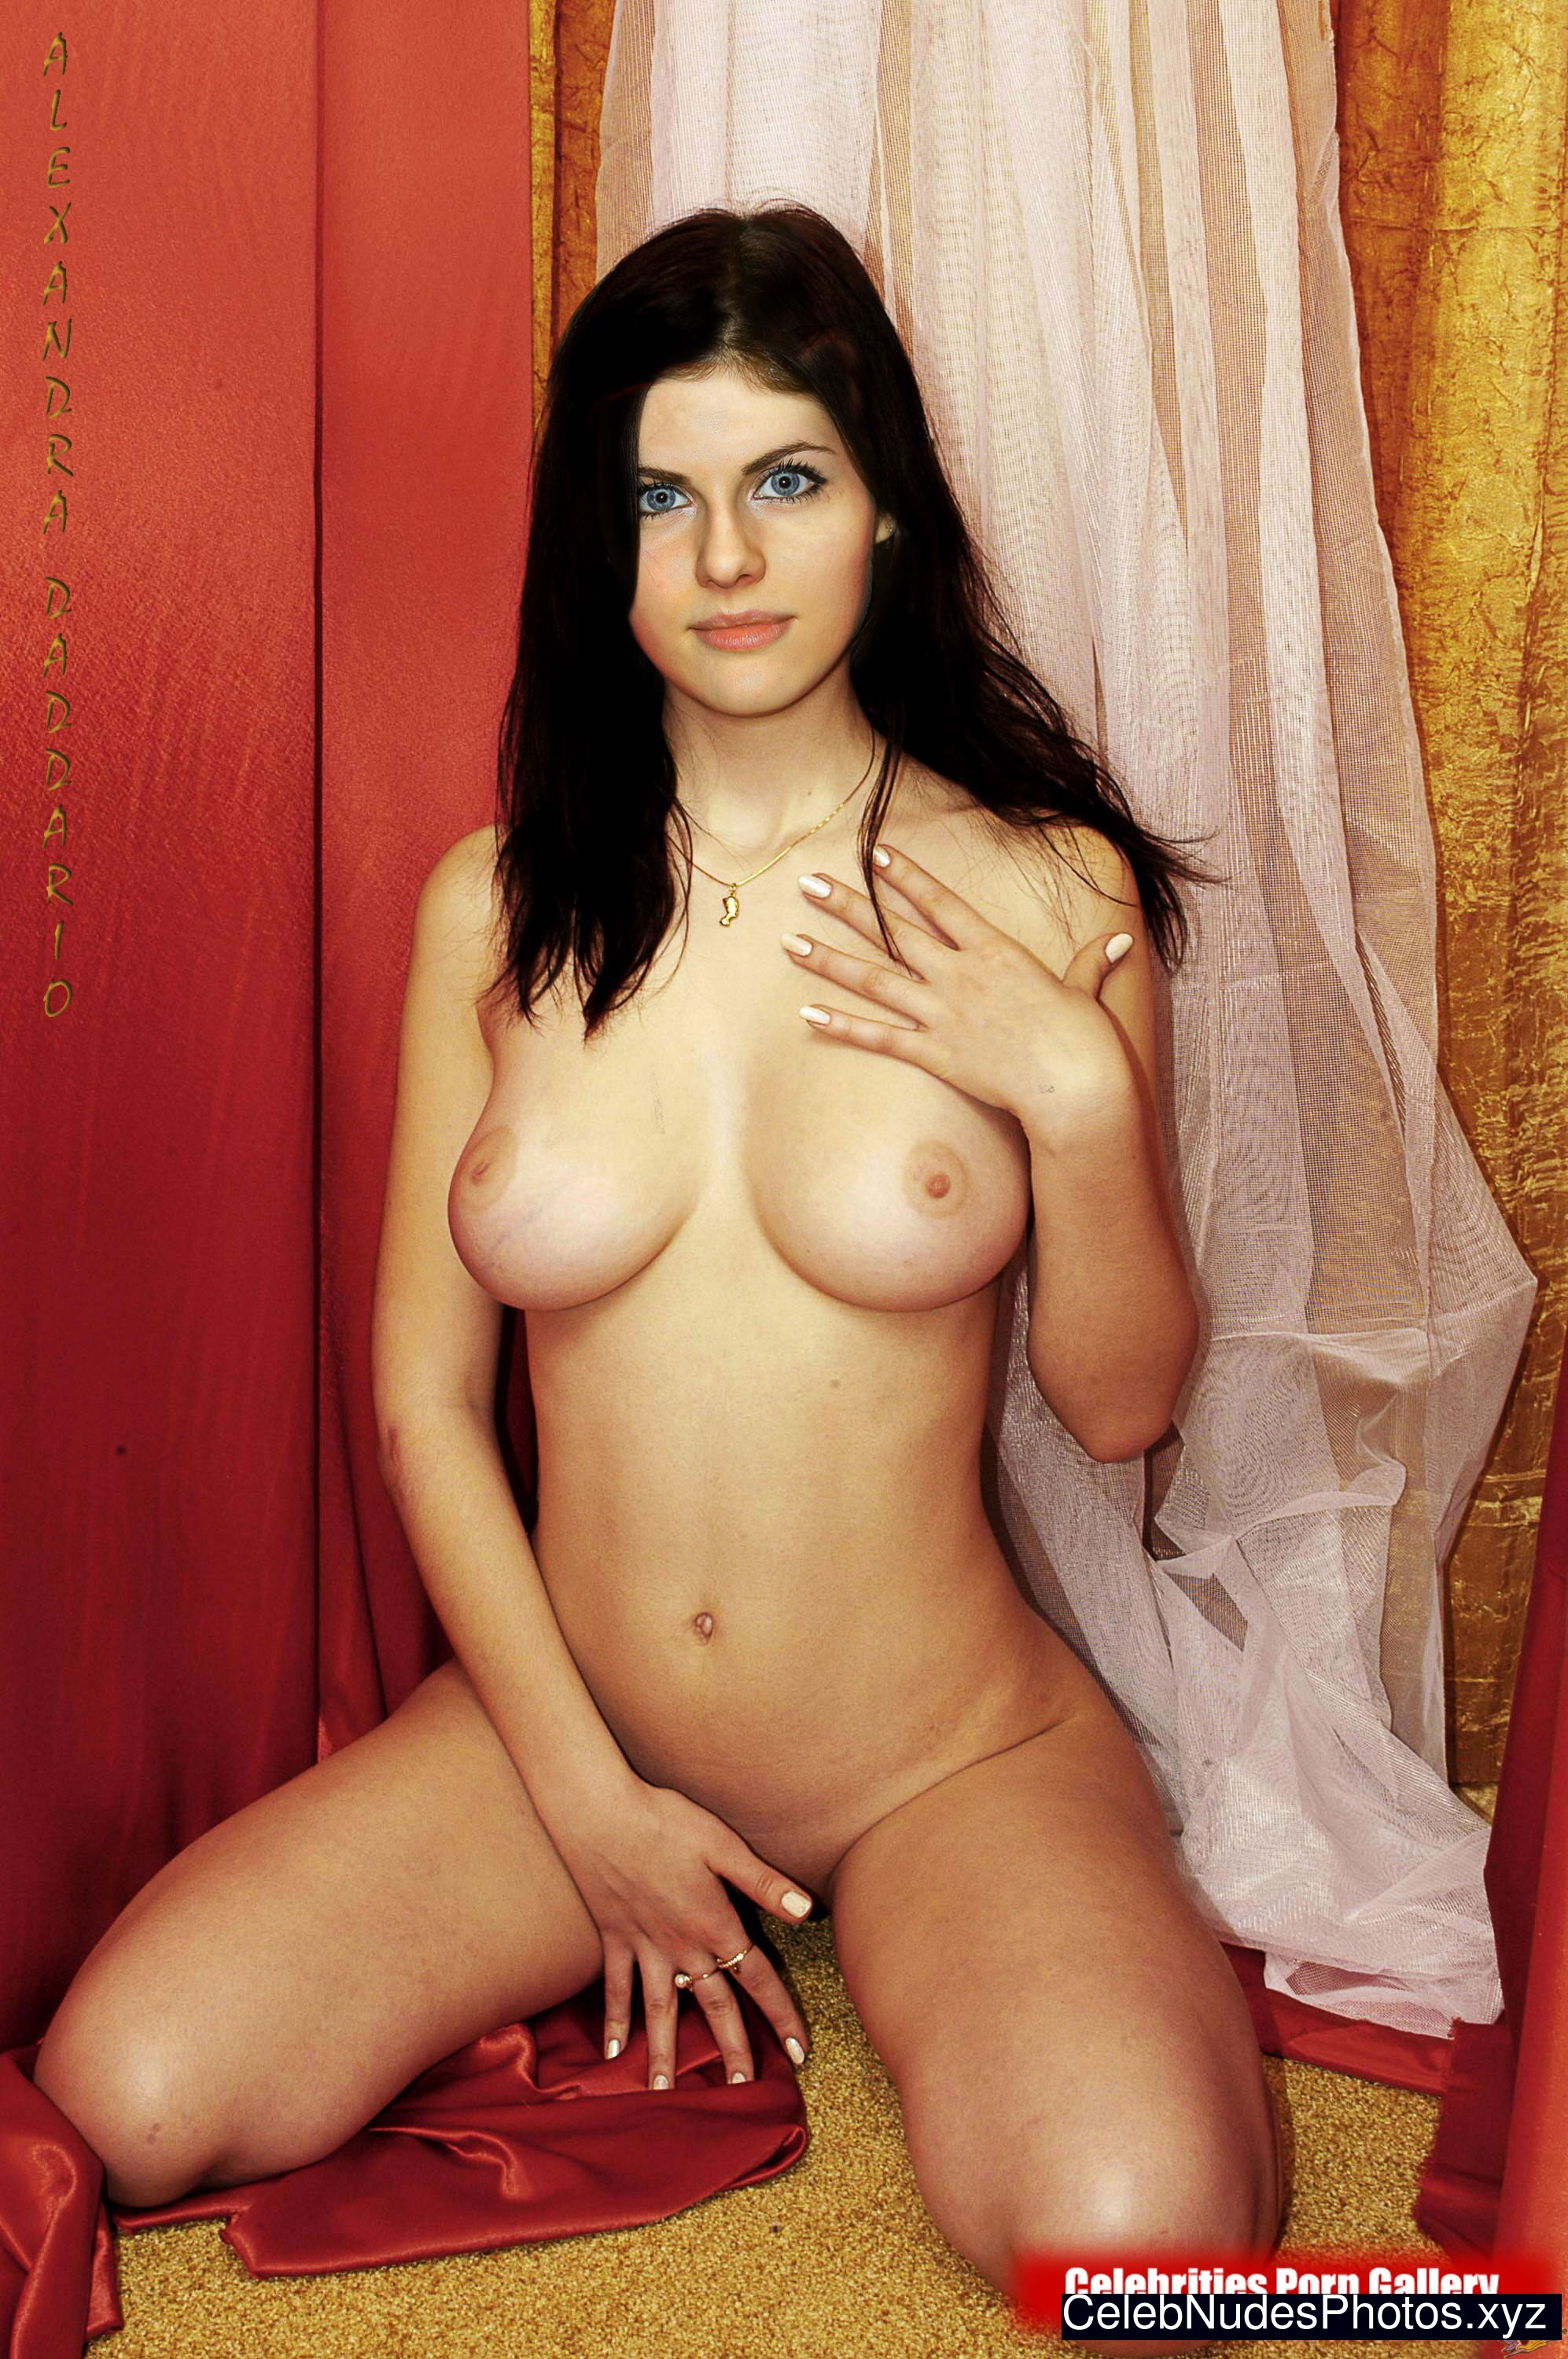 real nude celebrity pics